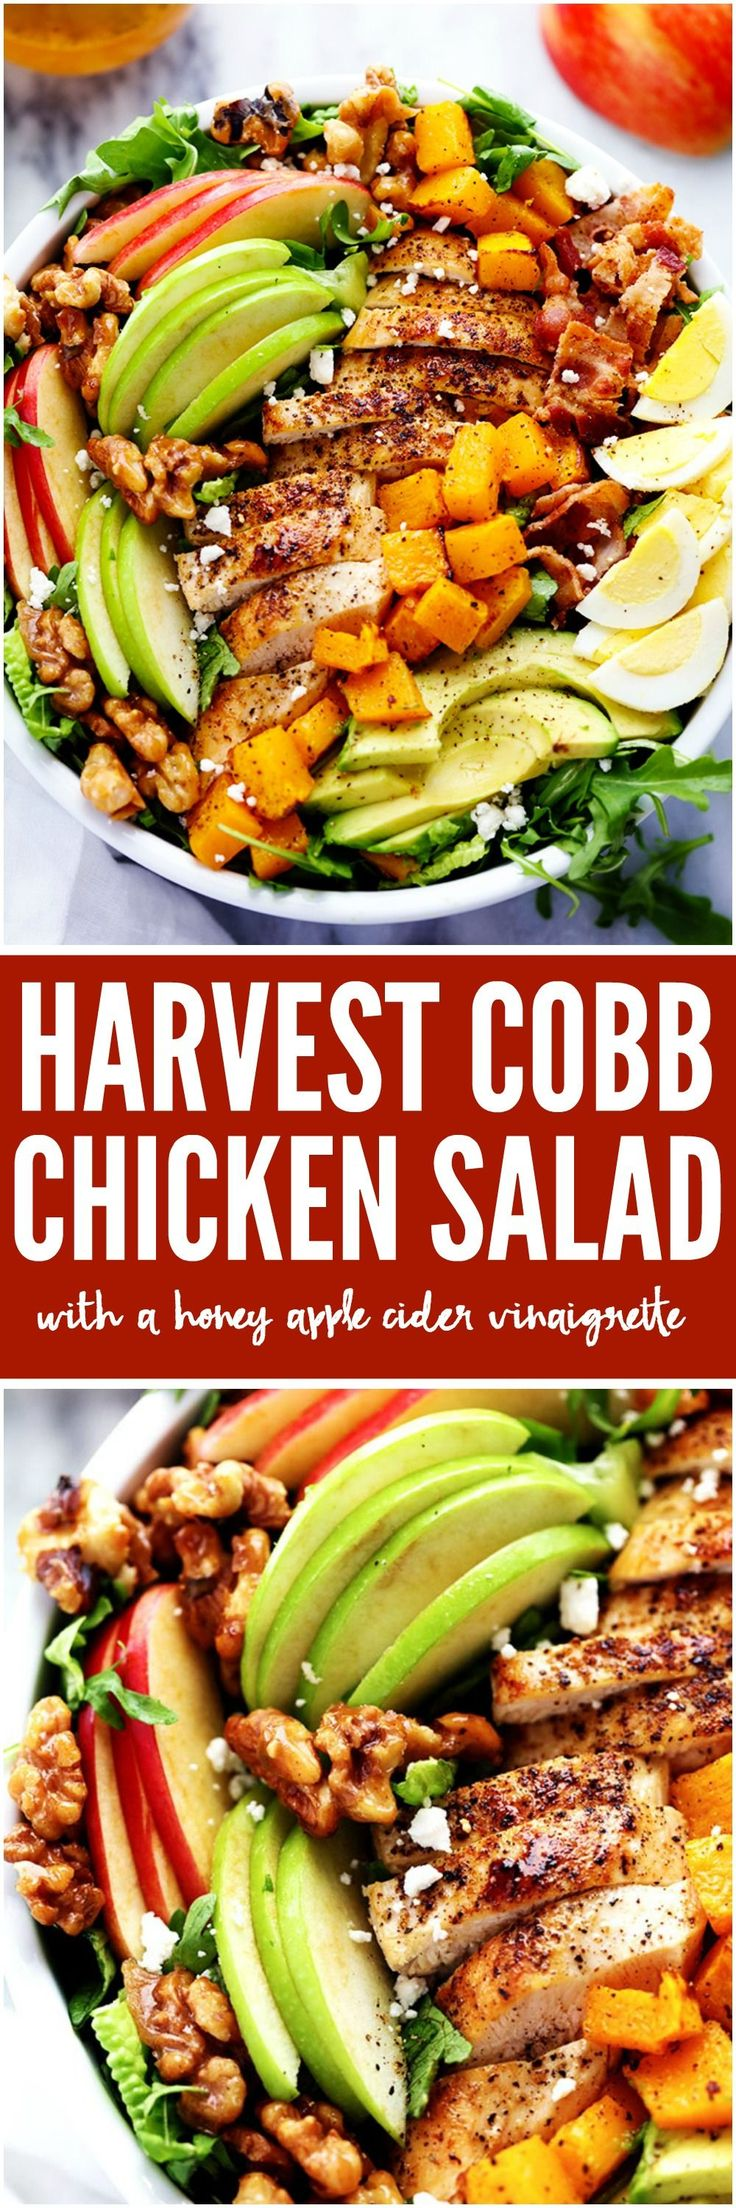 Harvest Cobb Chicken Salad with a Honey Apple Cider Vinaigrette is filled with crisp fall apples, roasted butternut squash, and all of the delicious things of fall come together in this mouthwatering salad.